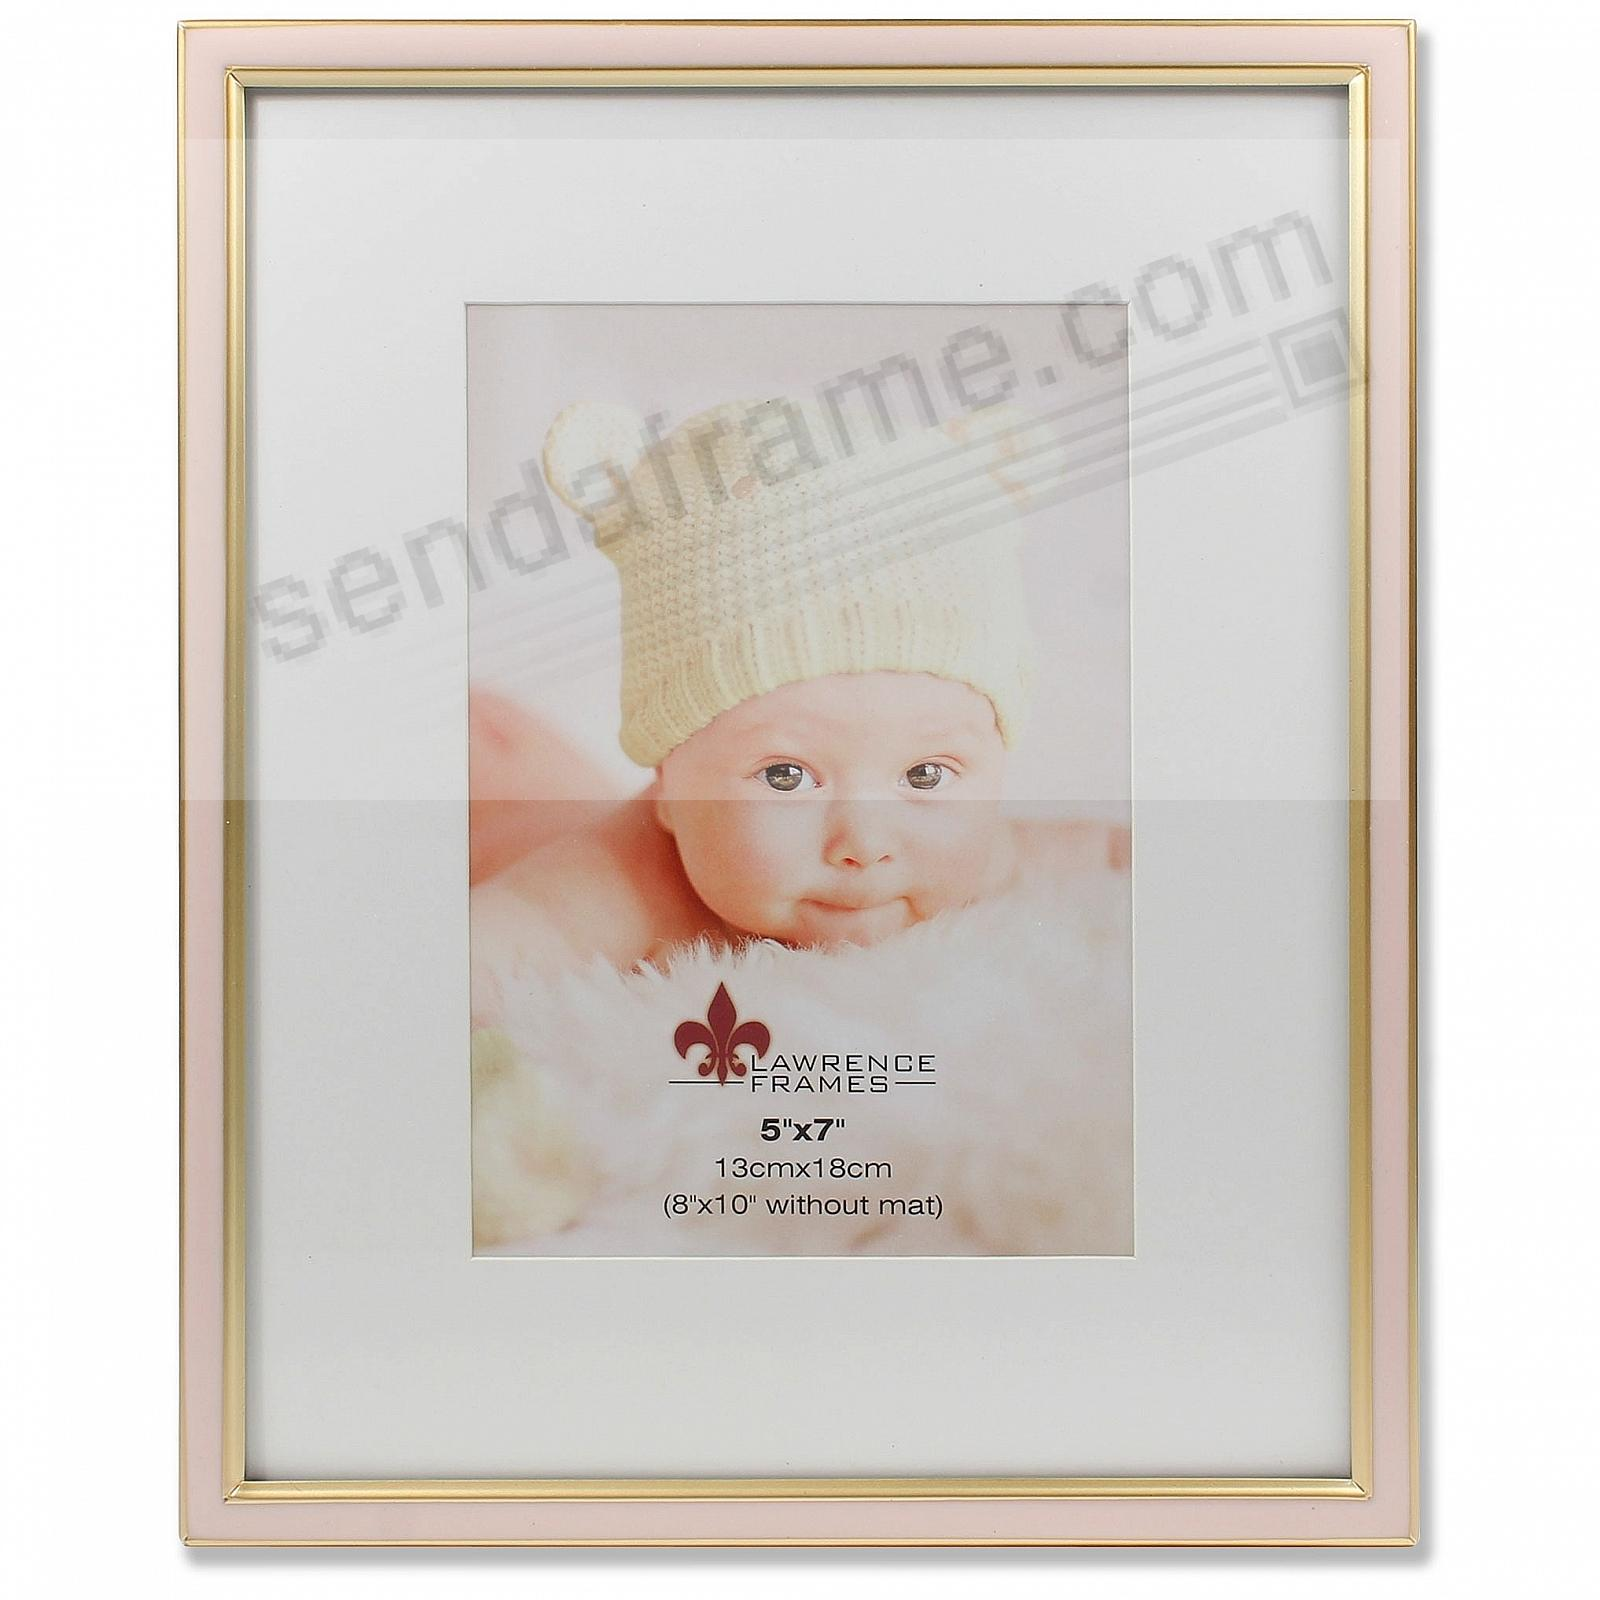 Matted pink enamel 8x105x7 frame by lawrence picture frames matted pink enamel 8x105x7 frame by lawrence jeuxipadfo Image collections